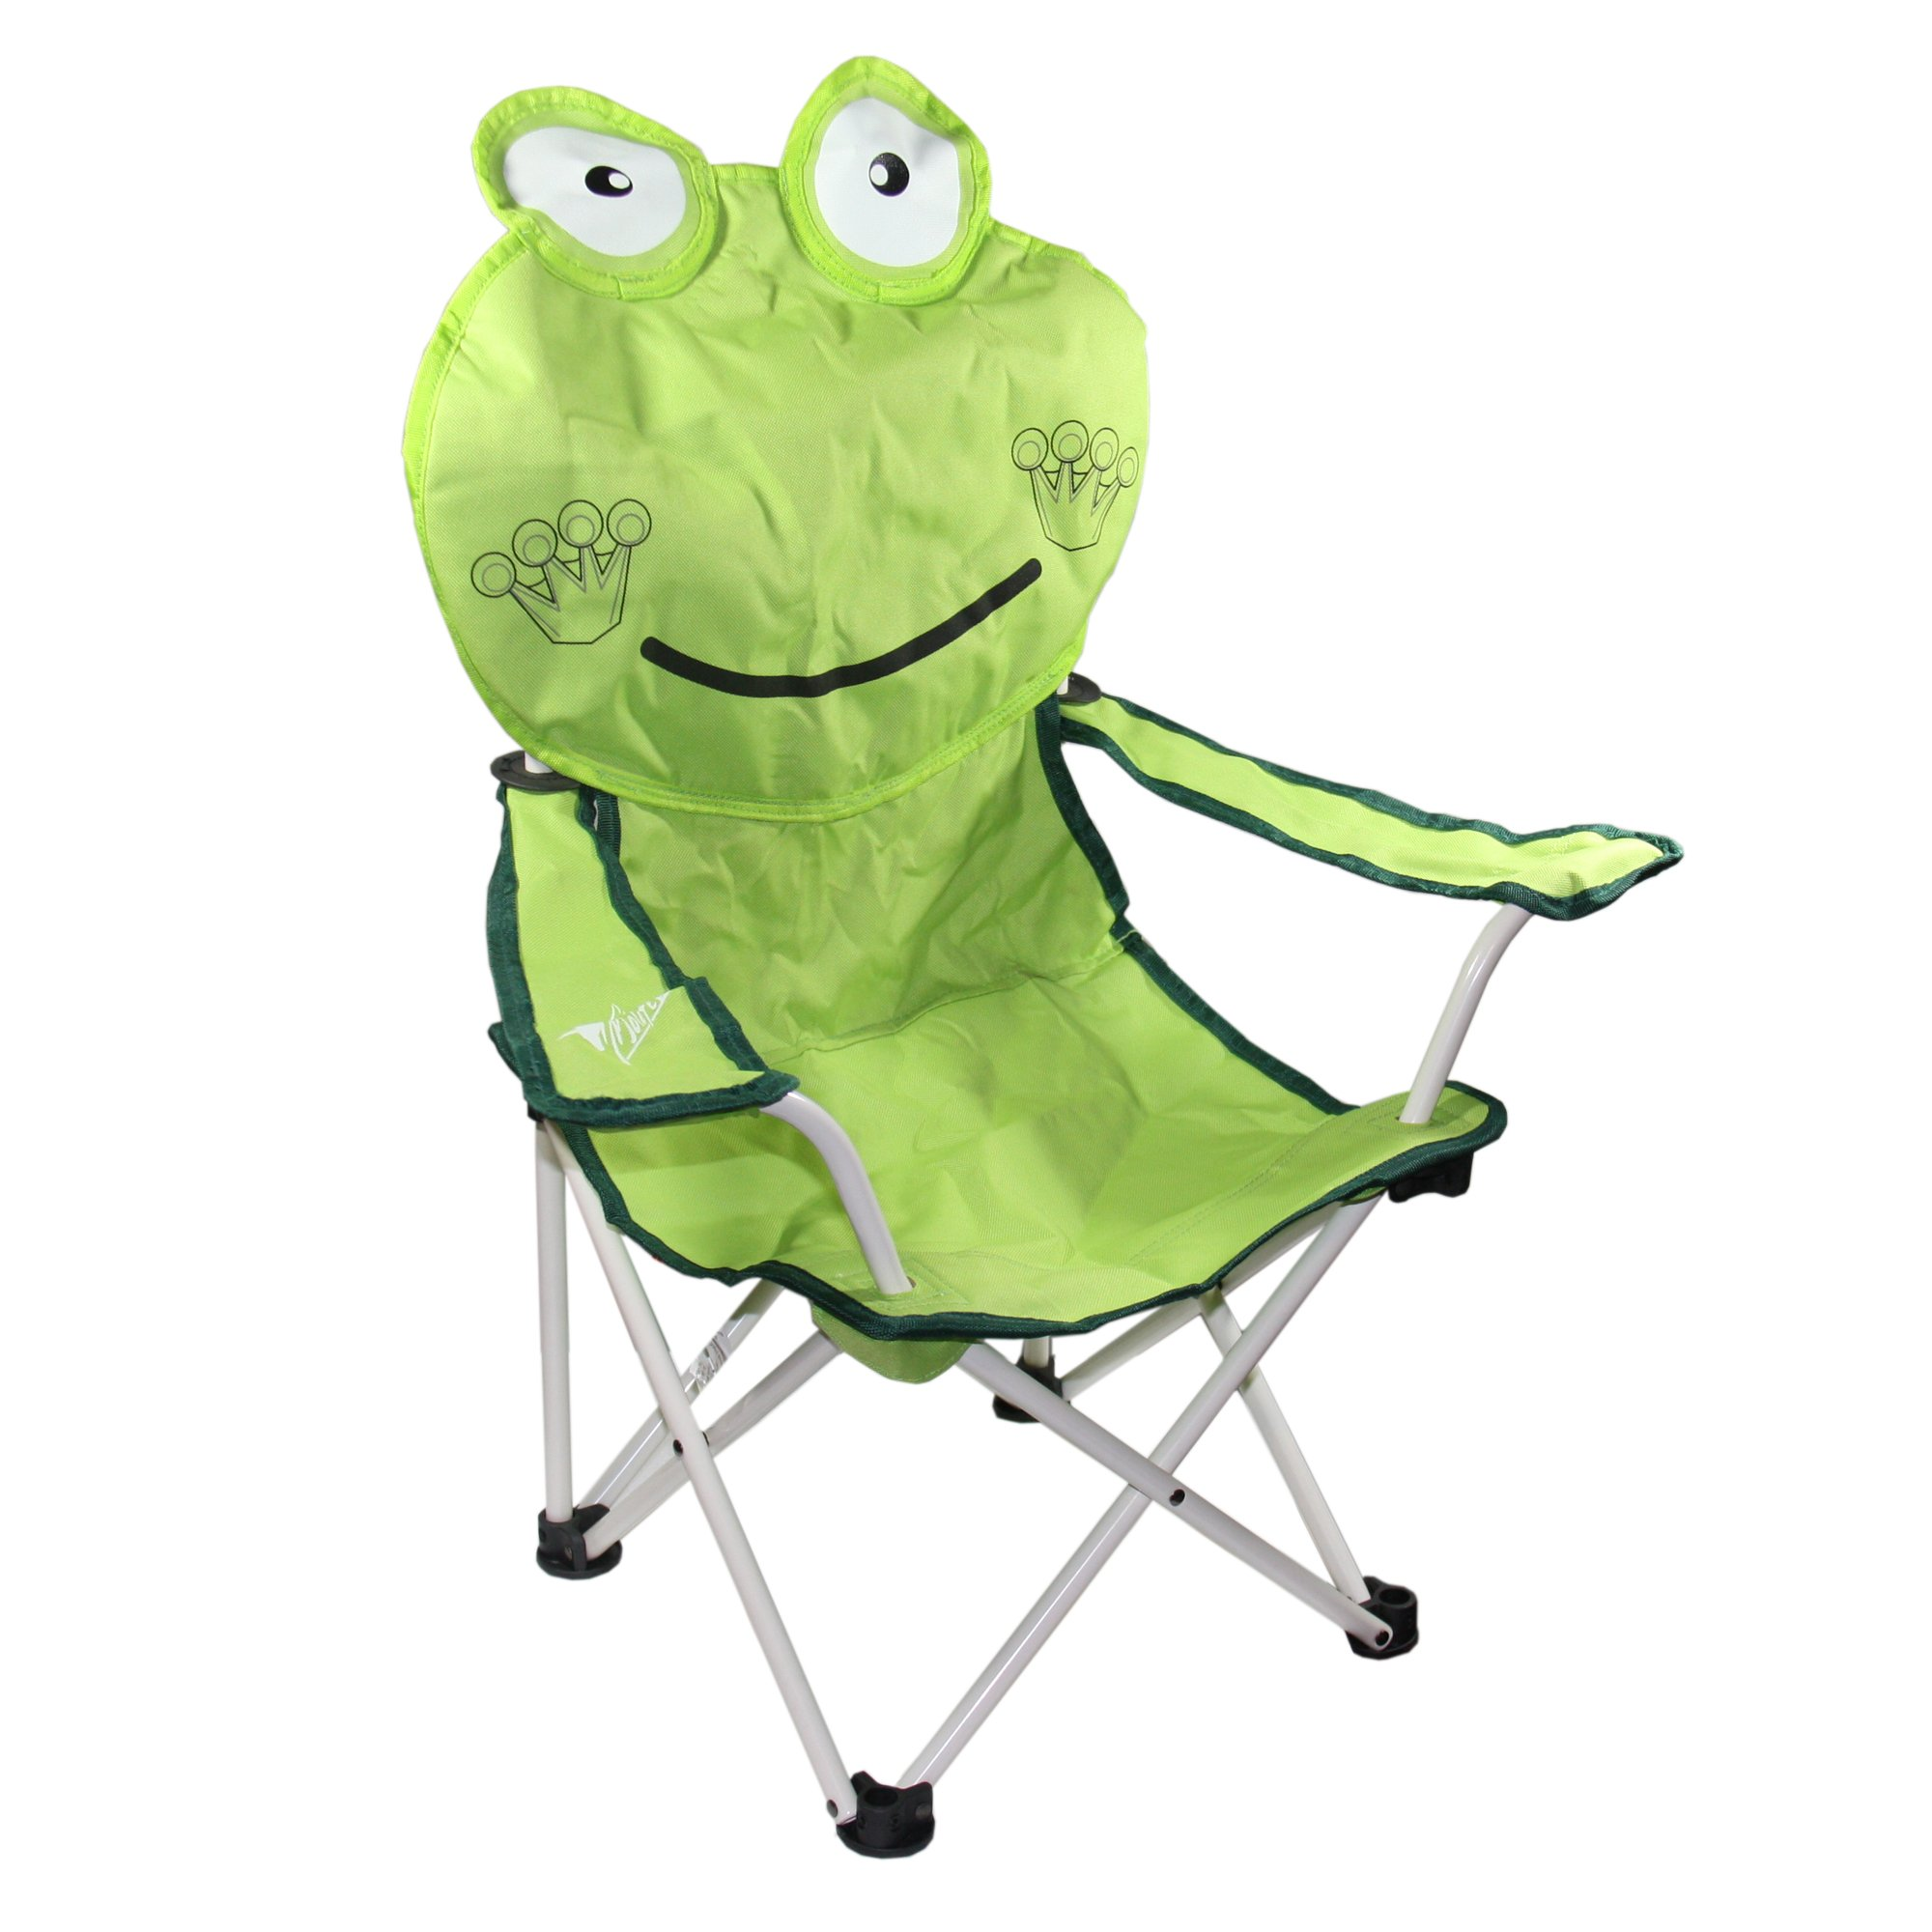 30 Inch Happy Frog Children's Folding Chair with Armrest